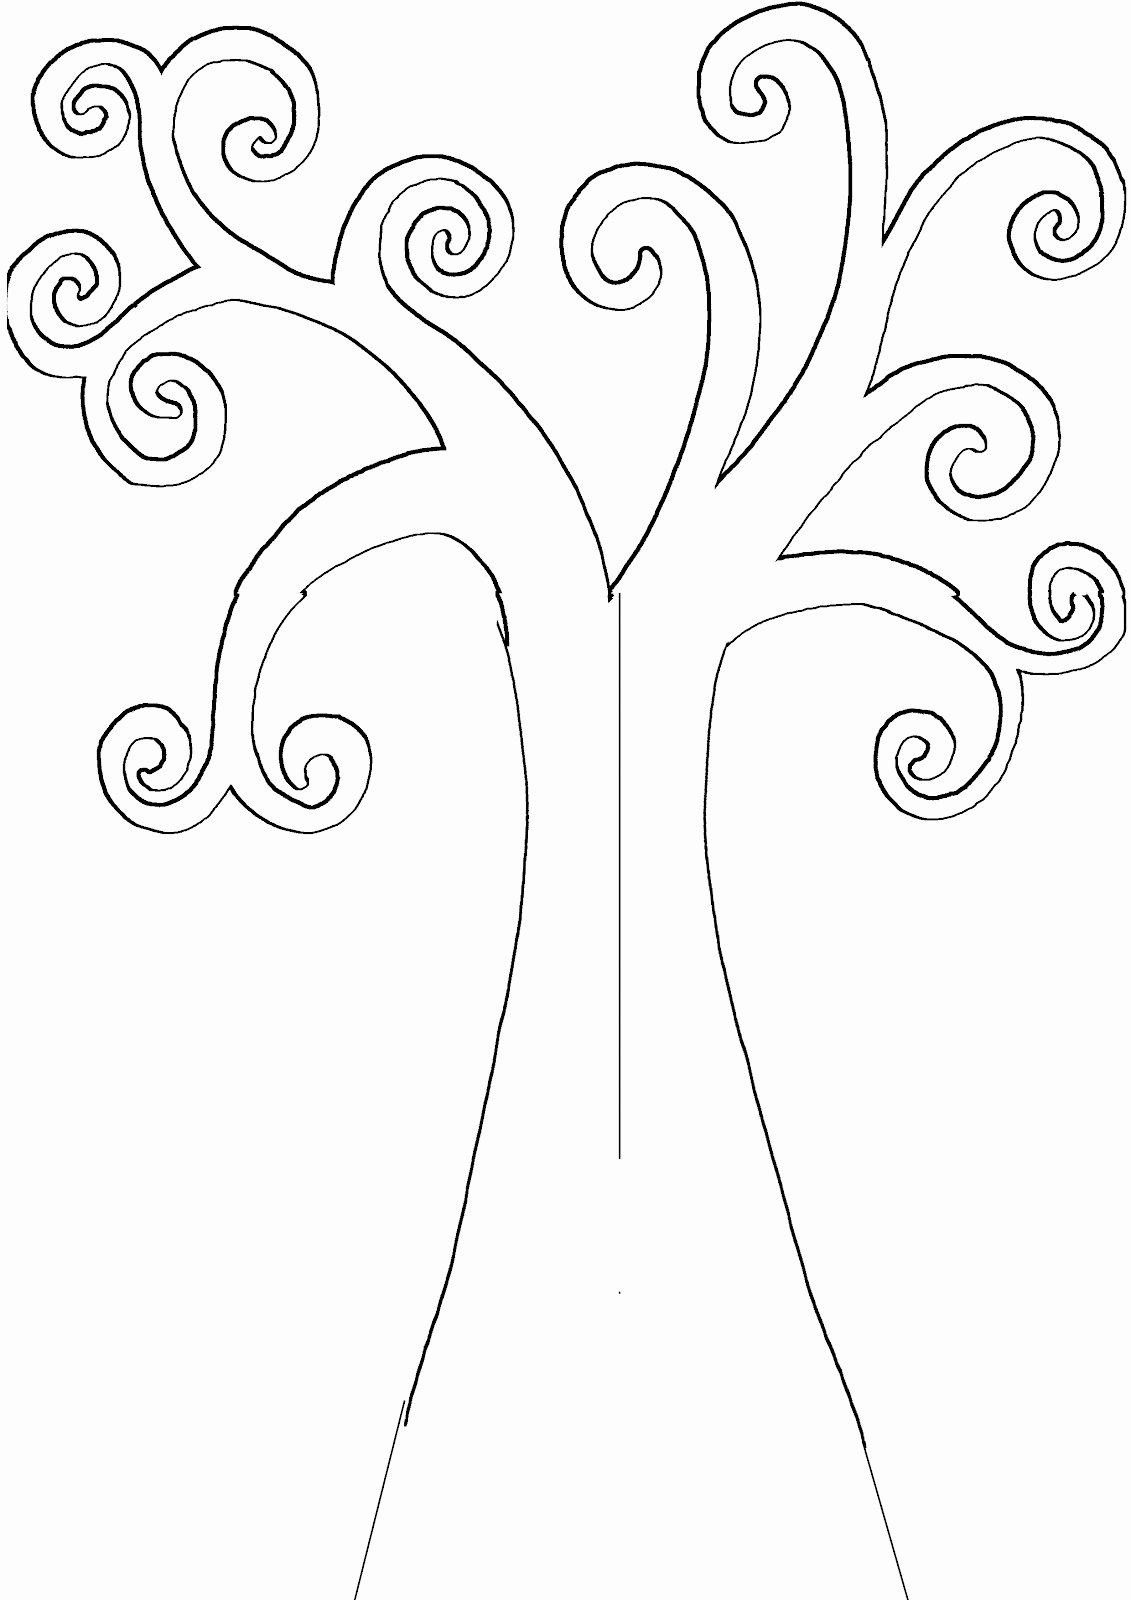 Tree Trunk Template Unique Tree Trunk Coloring Pages